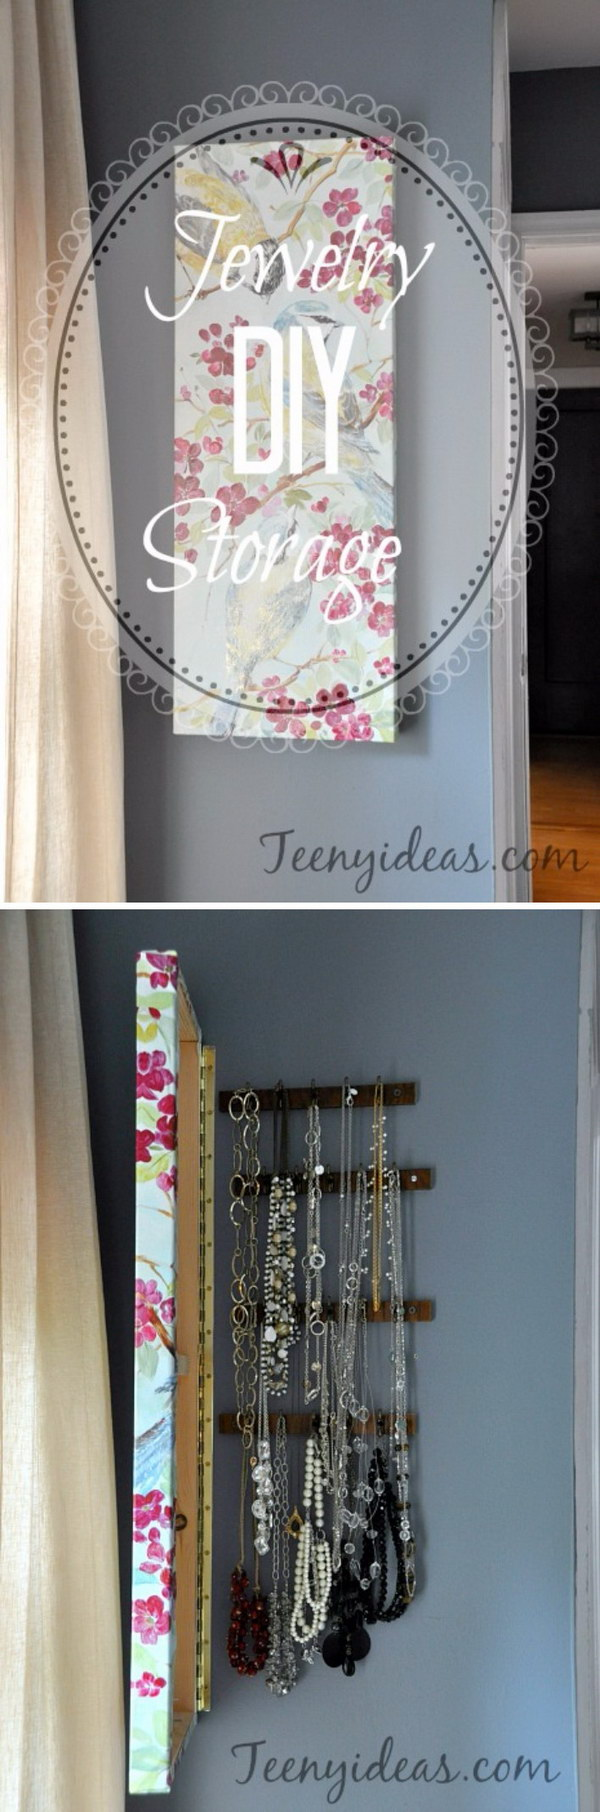 DIY Hidden Jewelry Storage Behind Wall Canvas.